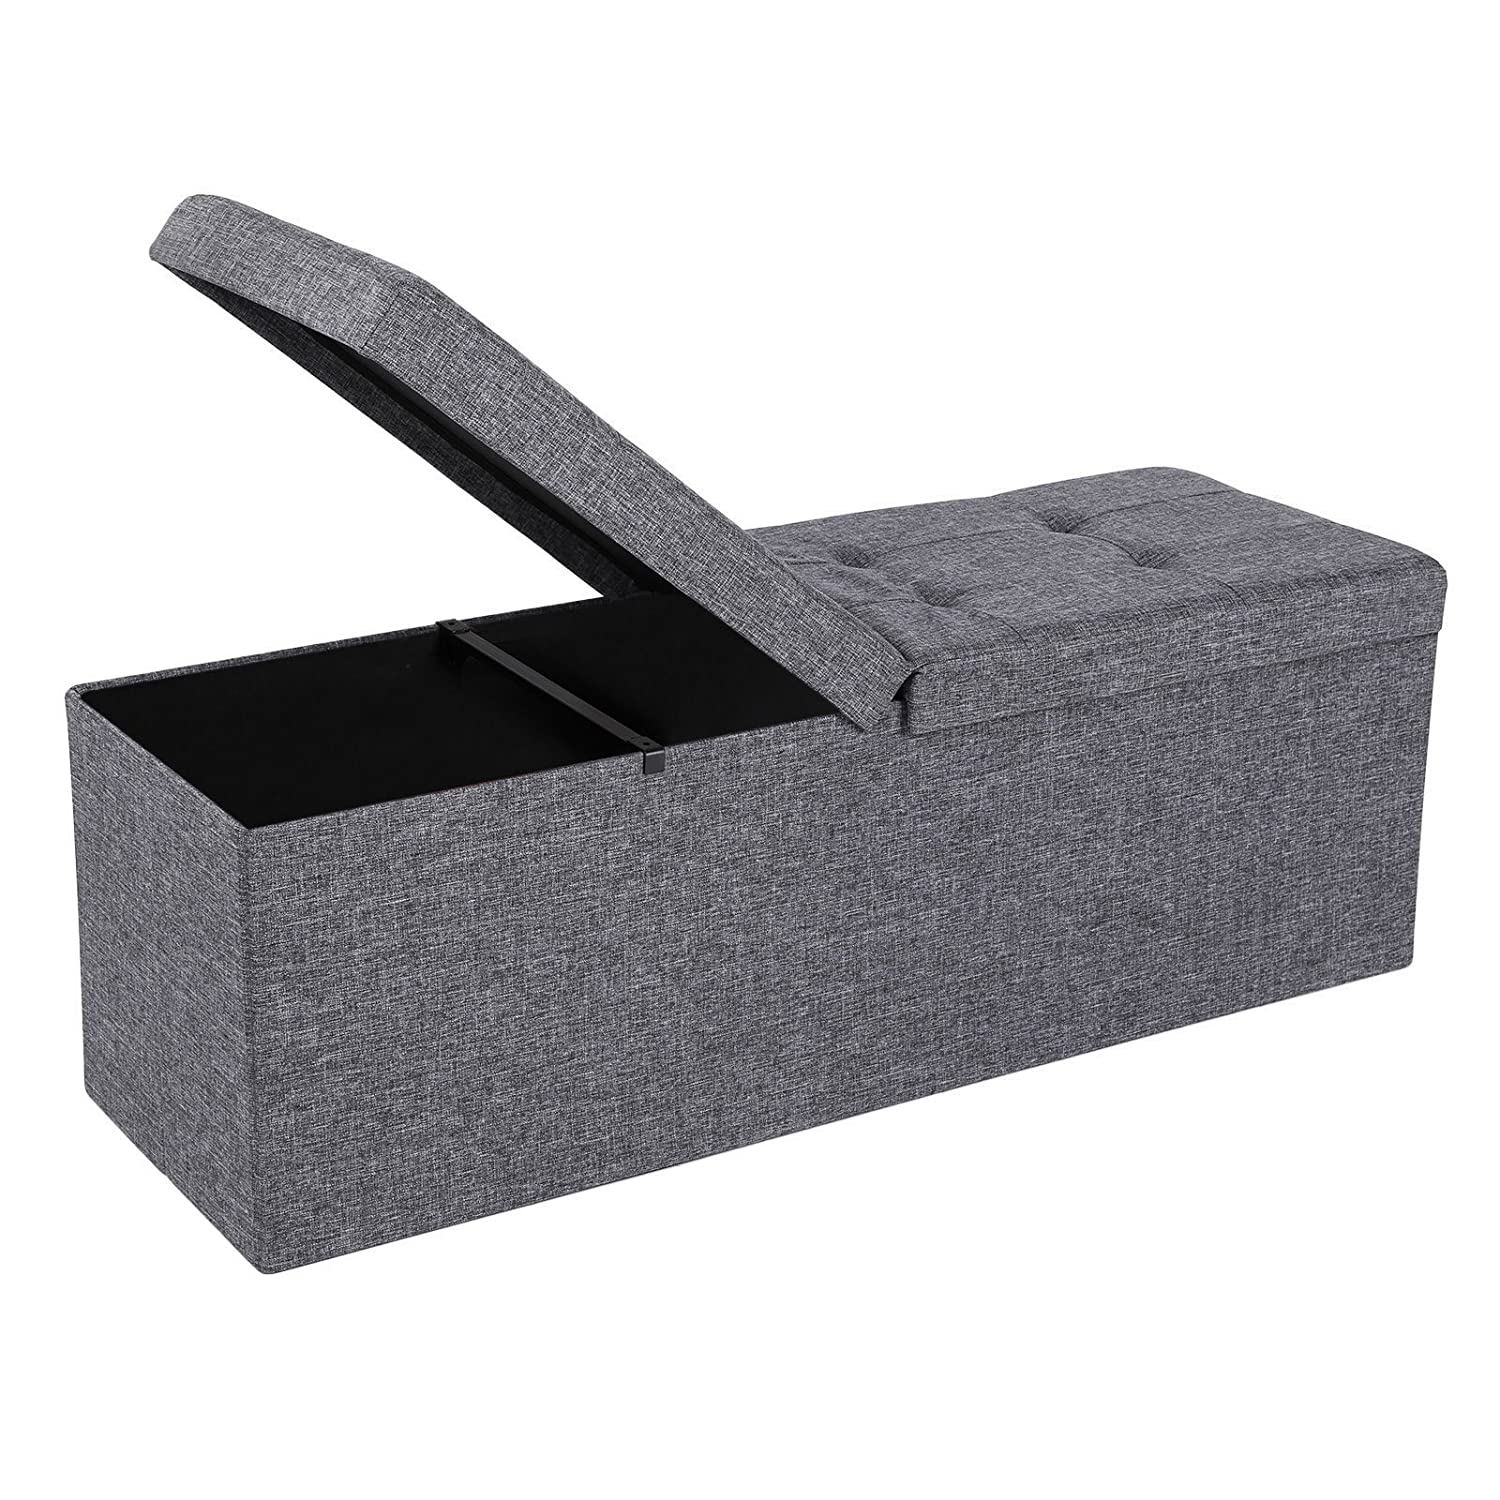 "SONGMICS 43"" L Fabric Storage Ottoman Bench with Lift Top, Storage Chest Foot Rest Stool, Dark Grey ULSF70H"